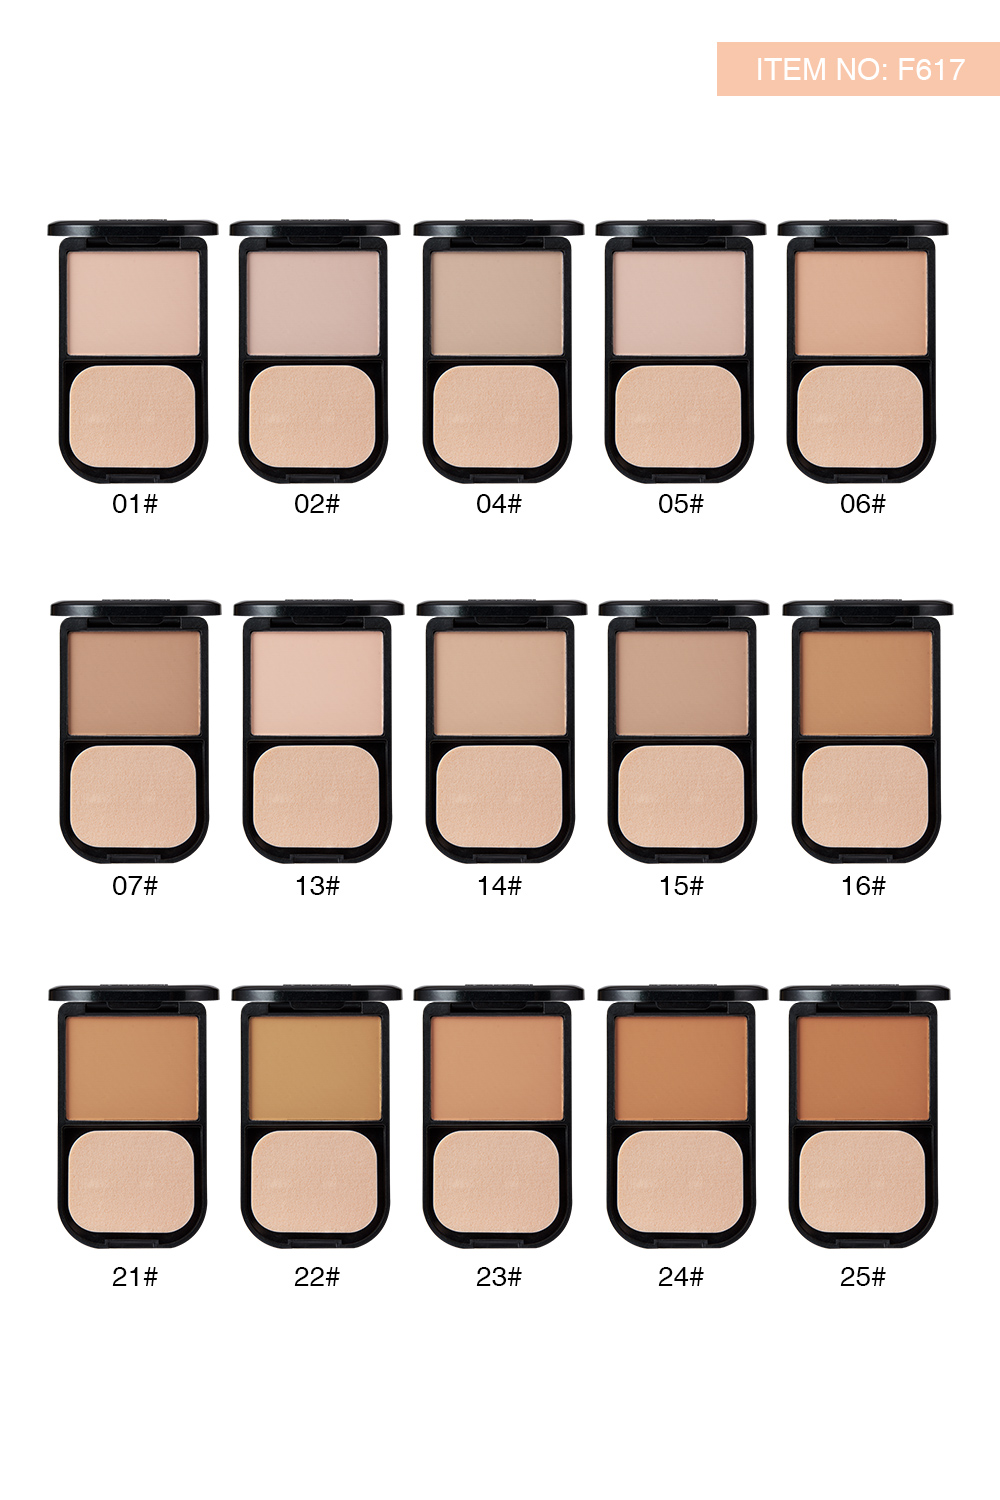 Menow F617 Face Makeup Silky Pressed Powder Foundation